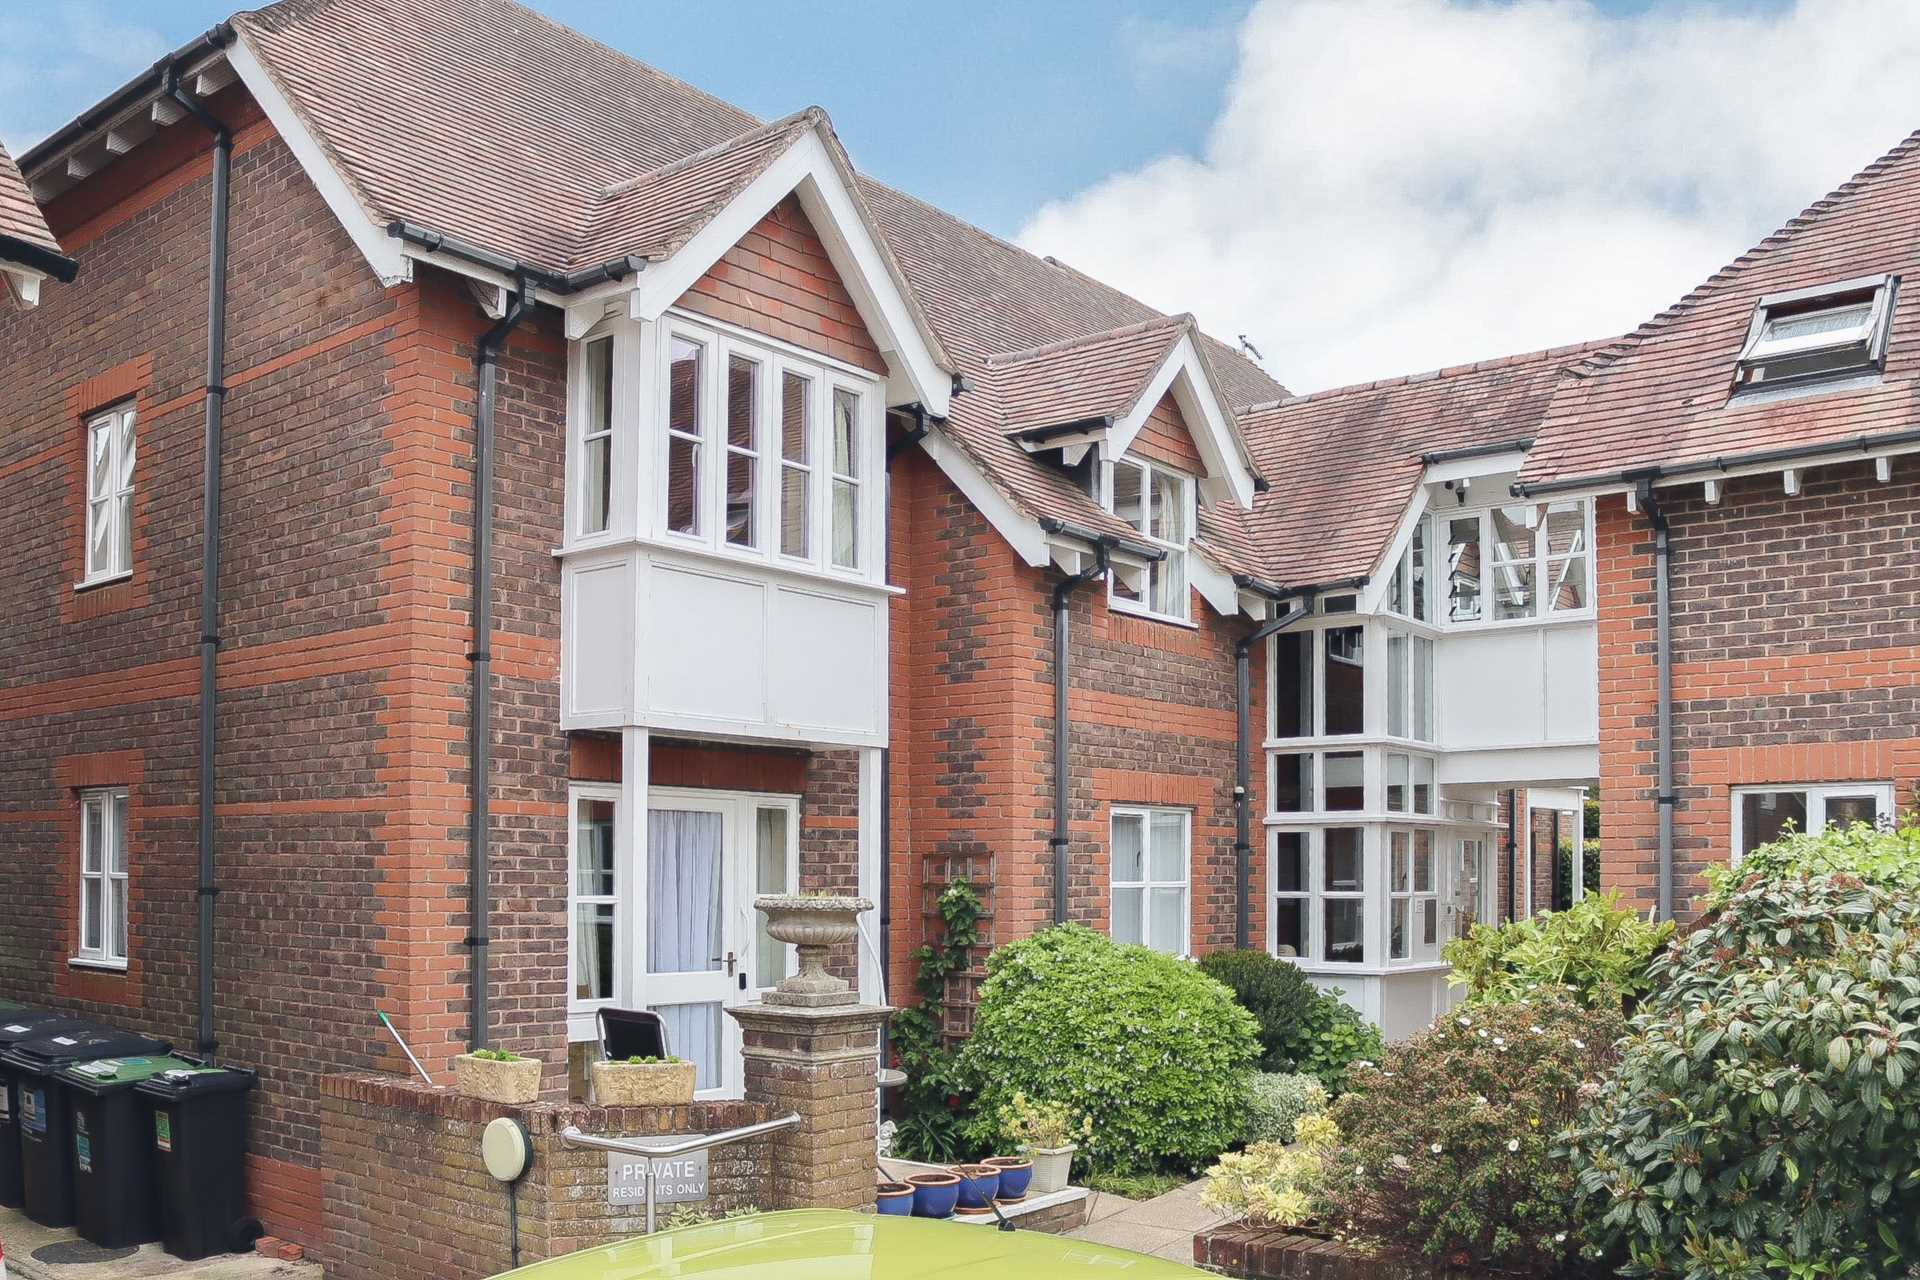 2 bed retirement property for sale in Whitecliffe Court, Blandford Forum, Blandford Forum 0